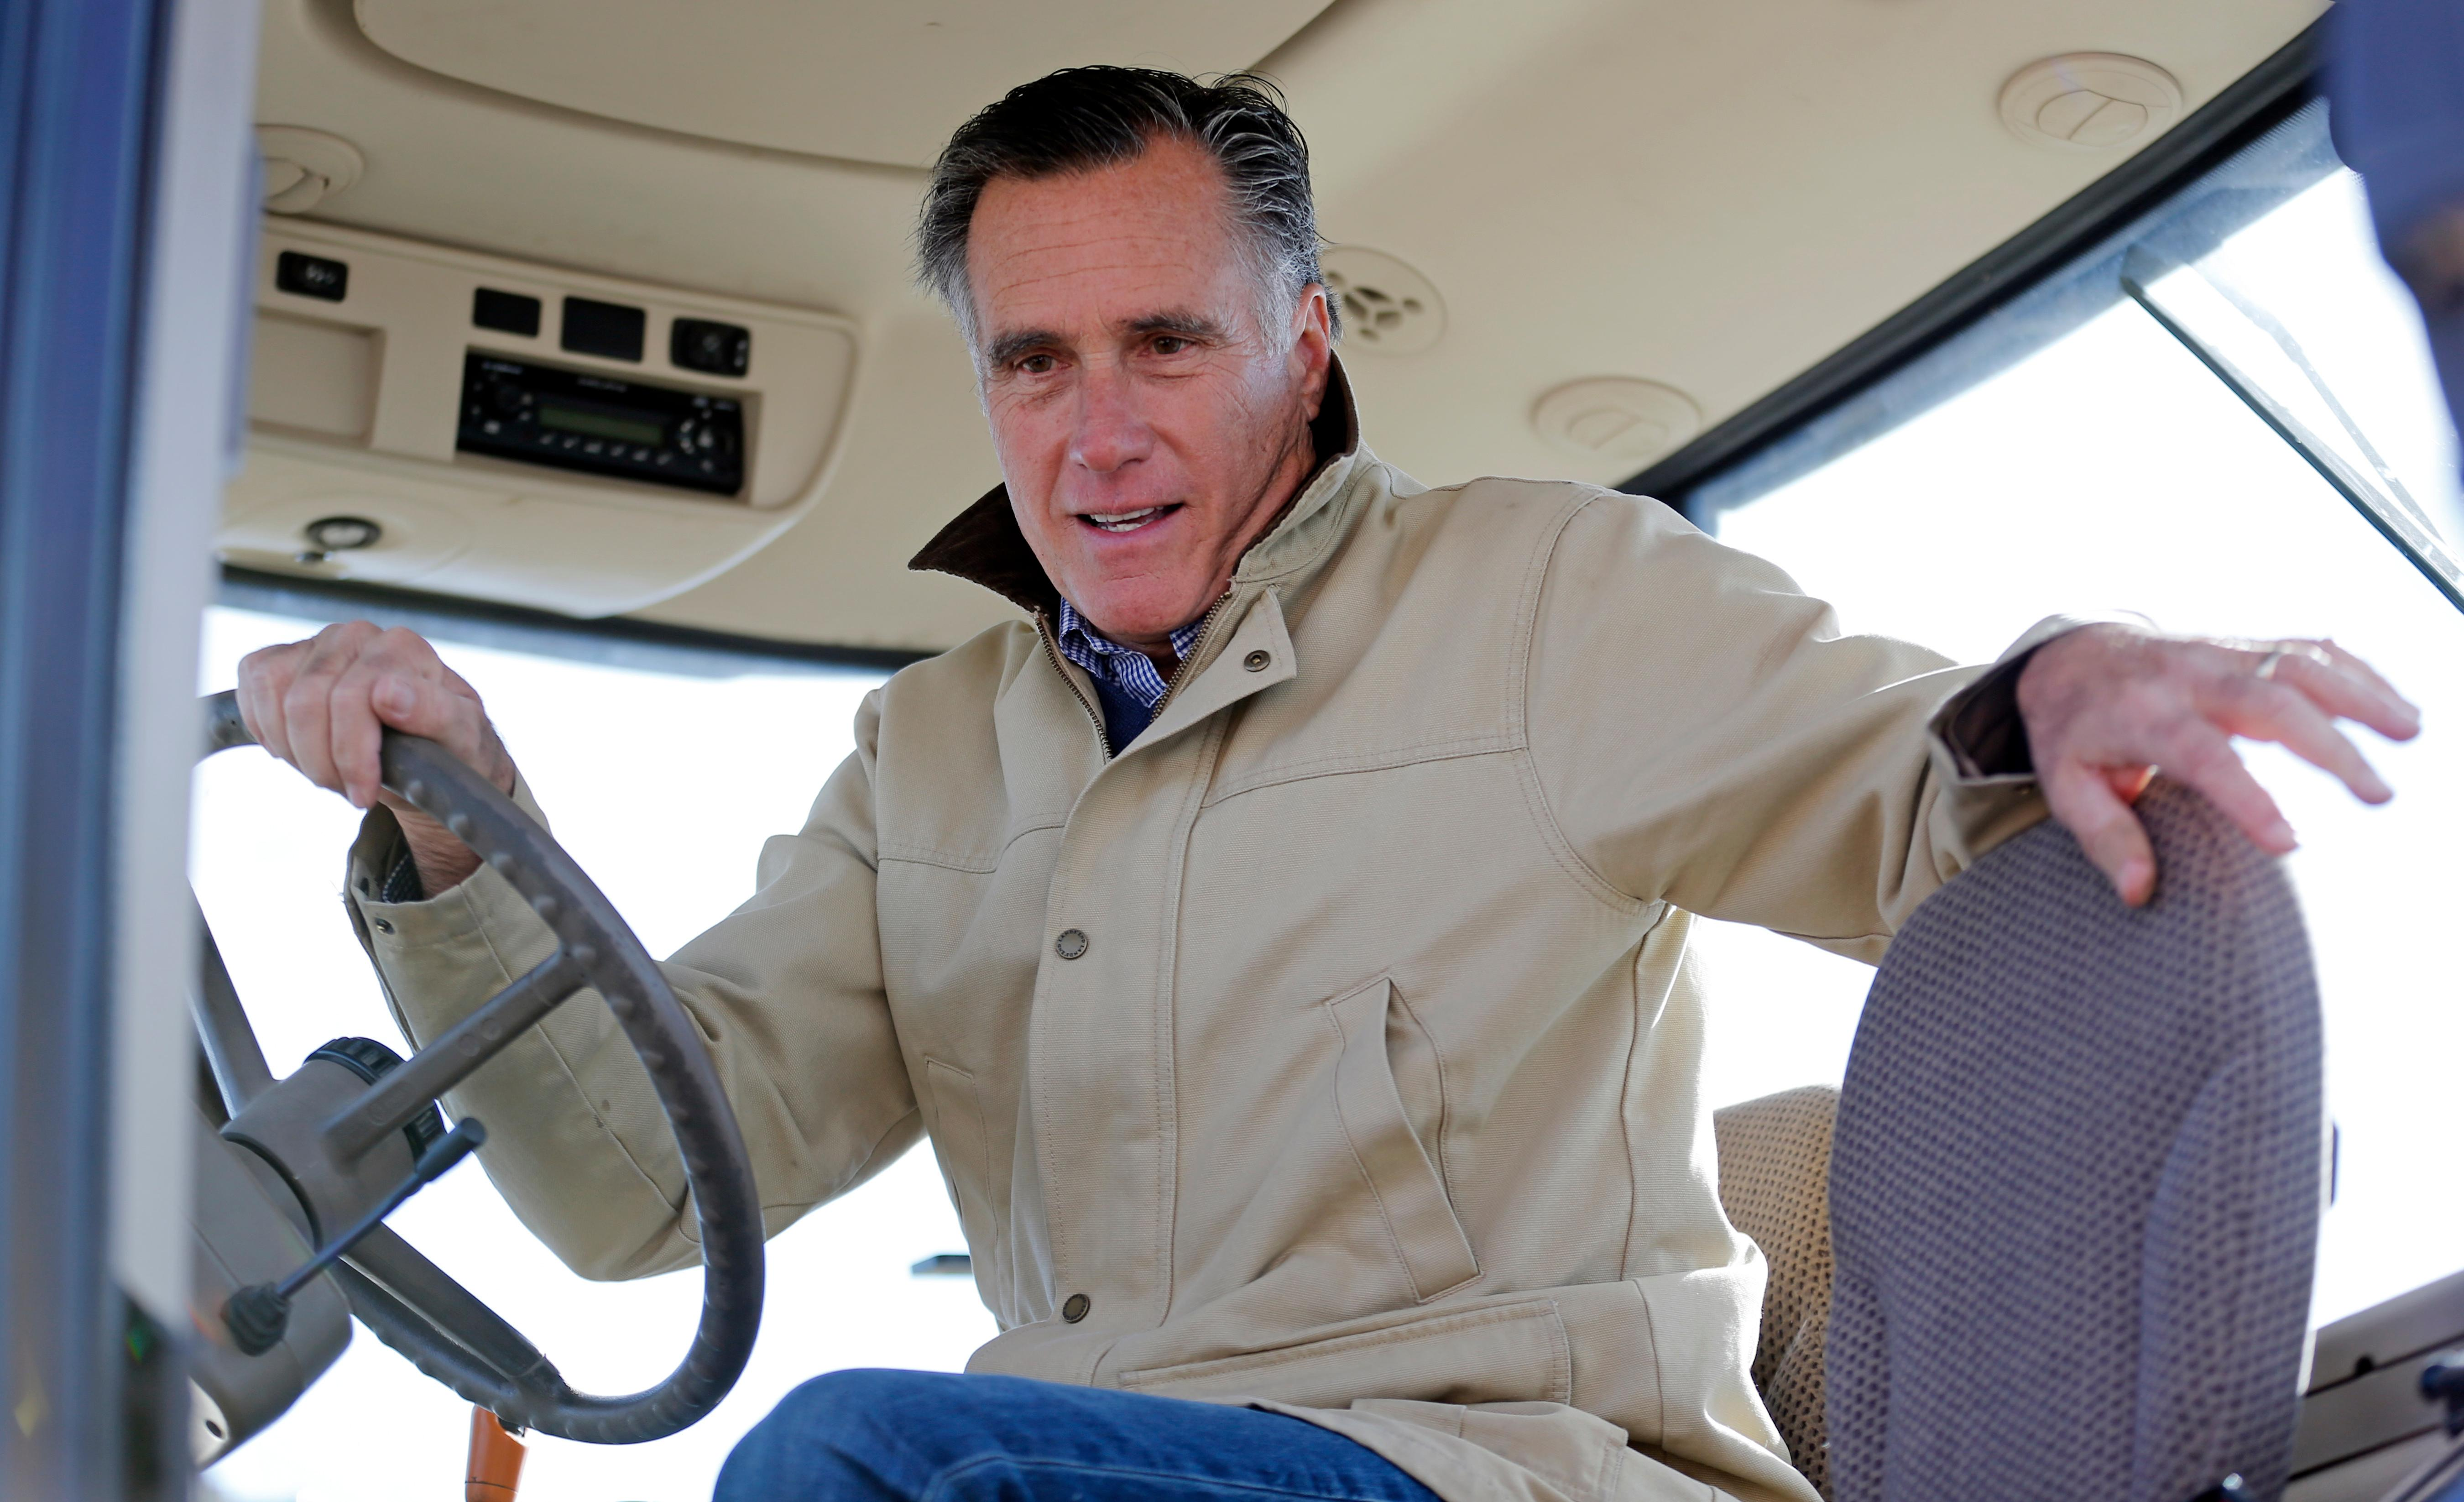 Former Republican presidential candidate Mitt Romney holds the wheel of a tractor during a tour of Gibson's Green Acres Dairy Friday, Feb. 16, 2018, in Ogden, Utah. The 2012 Republican presidential candidate plans to bid for the seat being vacated by retiring seven-term Utah Sen. Orrin Hatch. (AP Photo/Rick Bowmer)